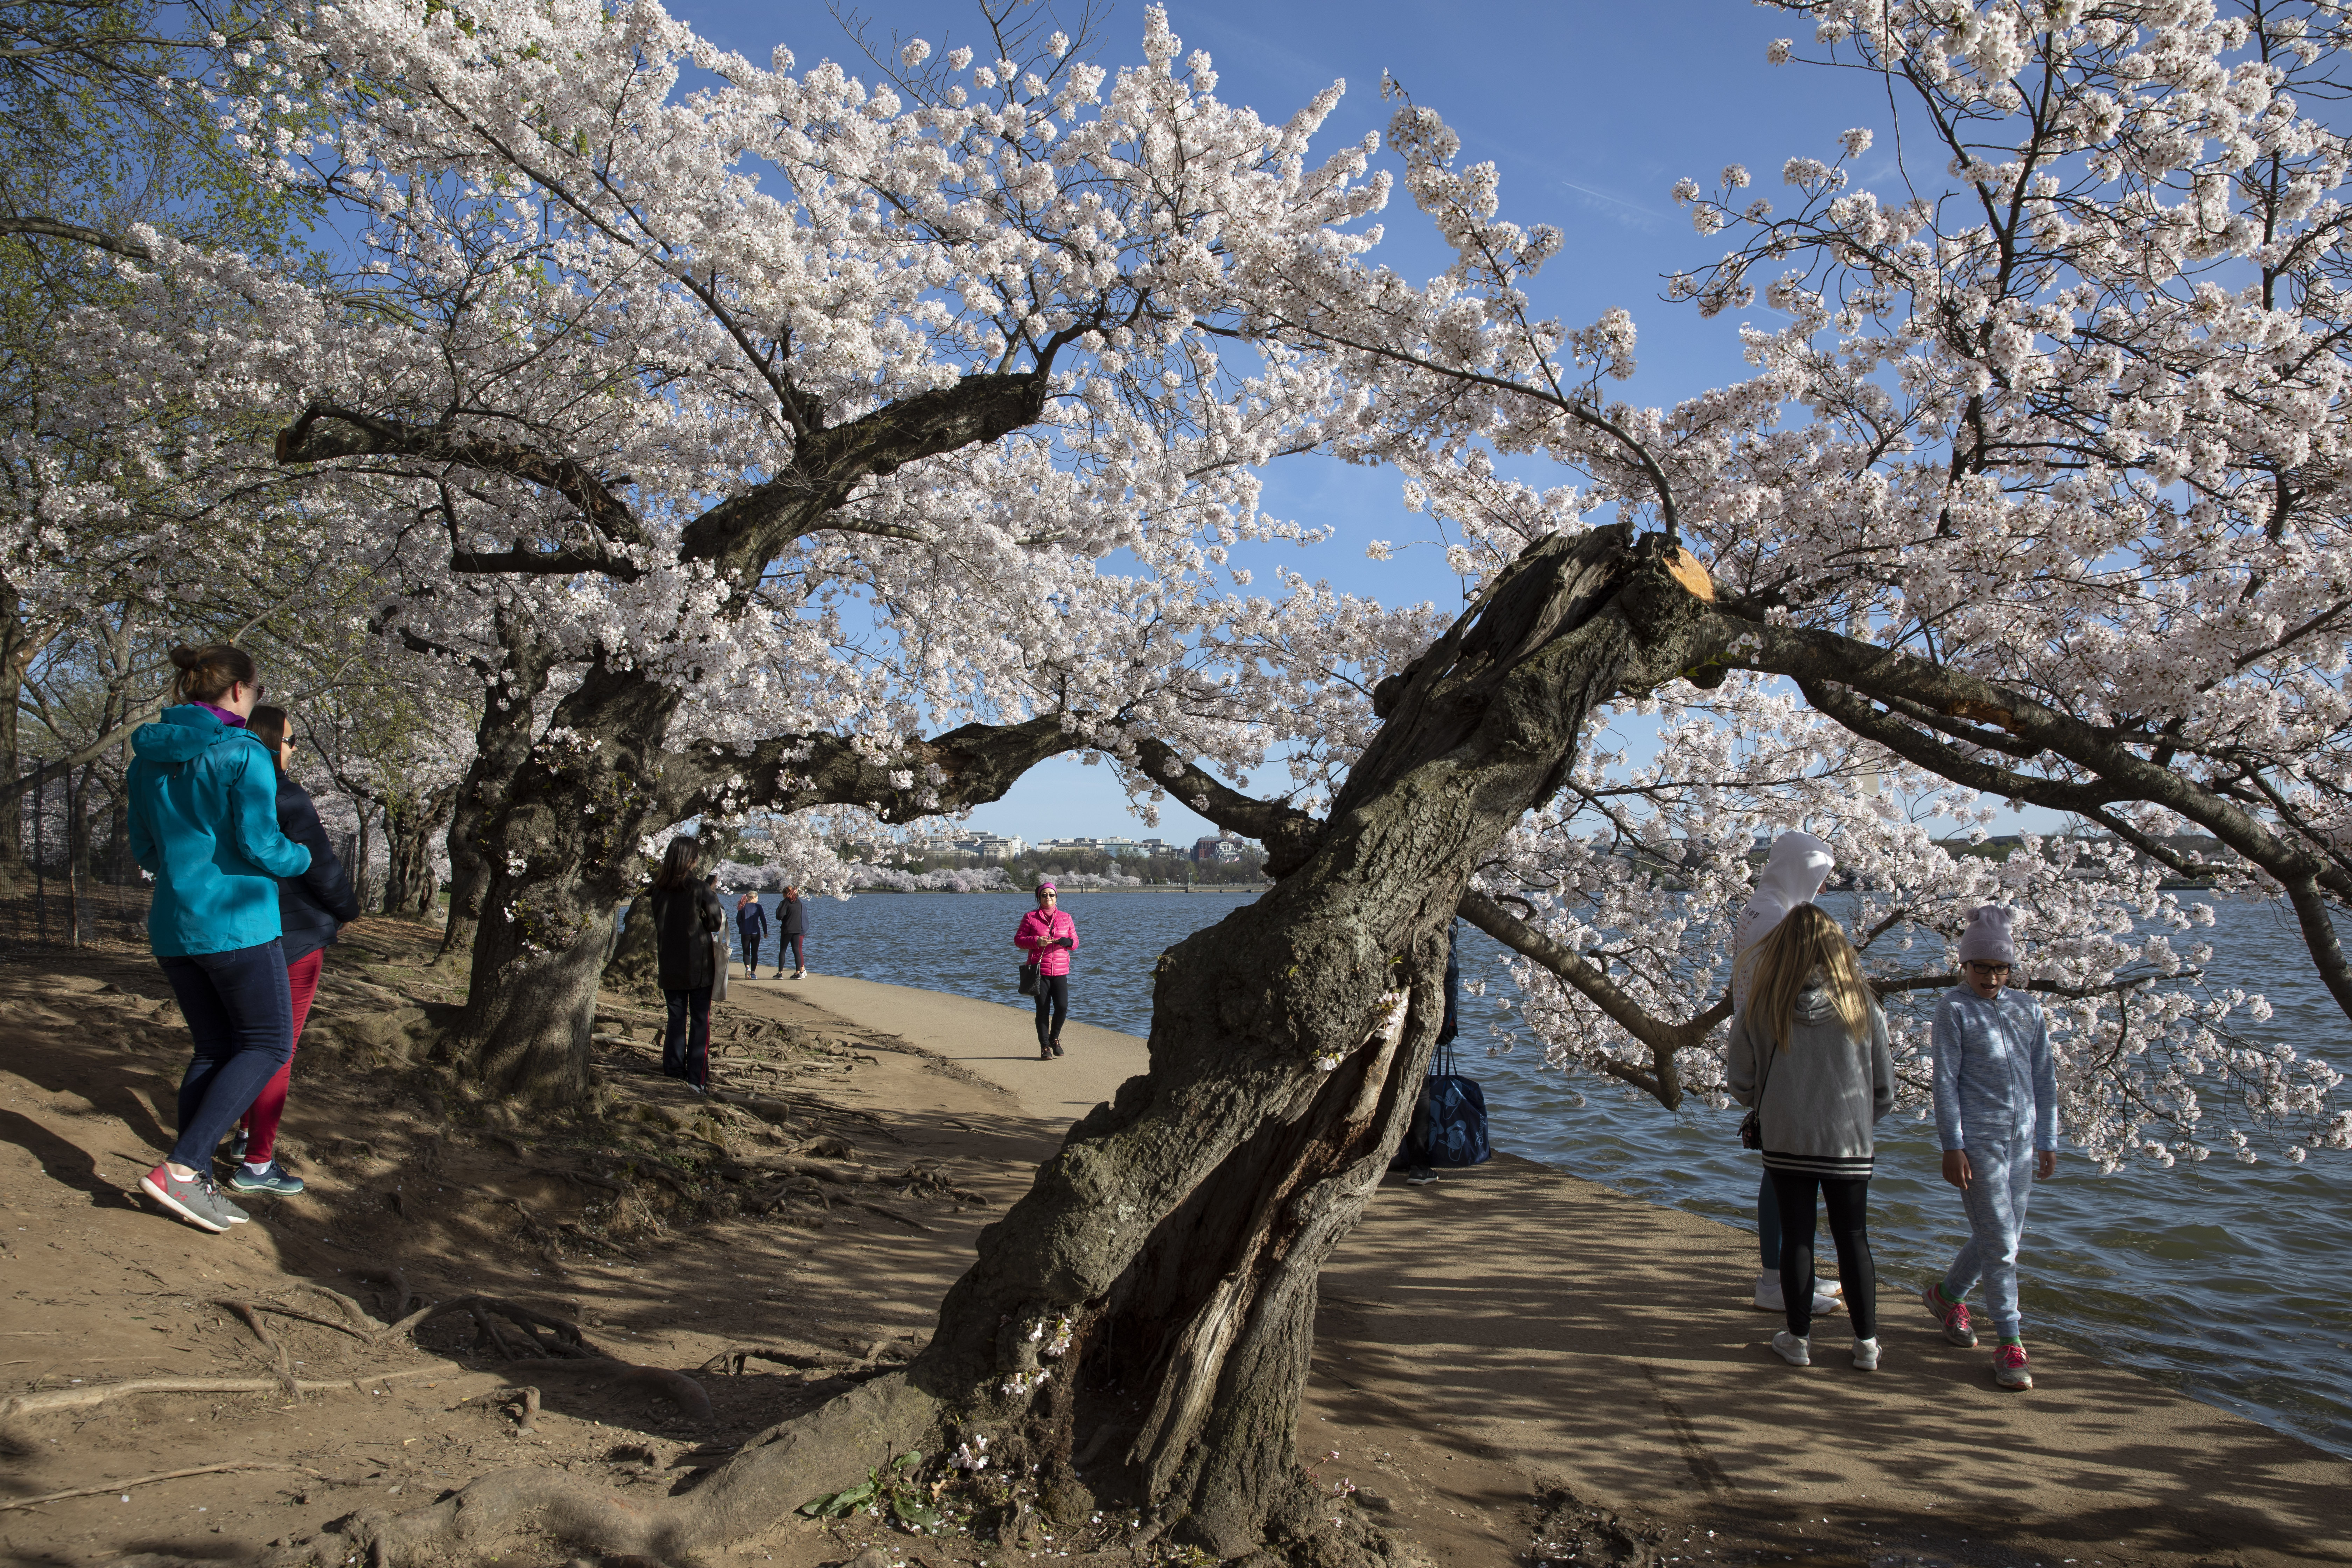 People visit the cherry blossom trees in full bloom at the tidal basin, on March 22, 2020, in Washington.